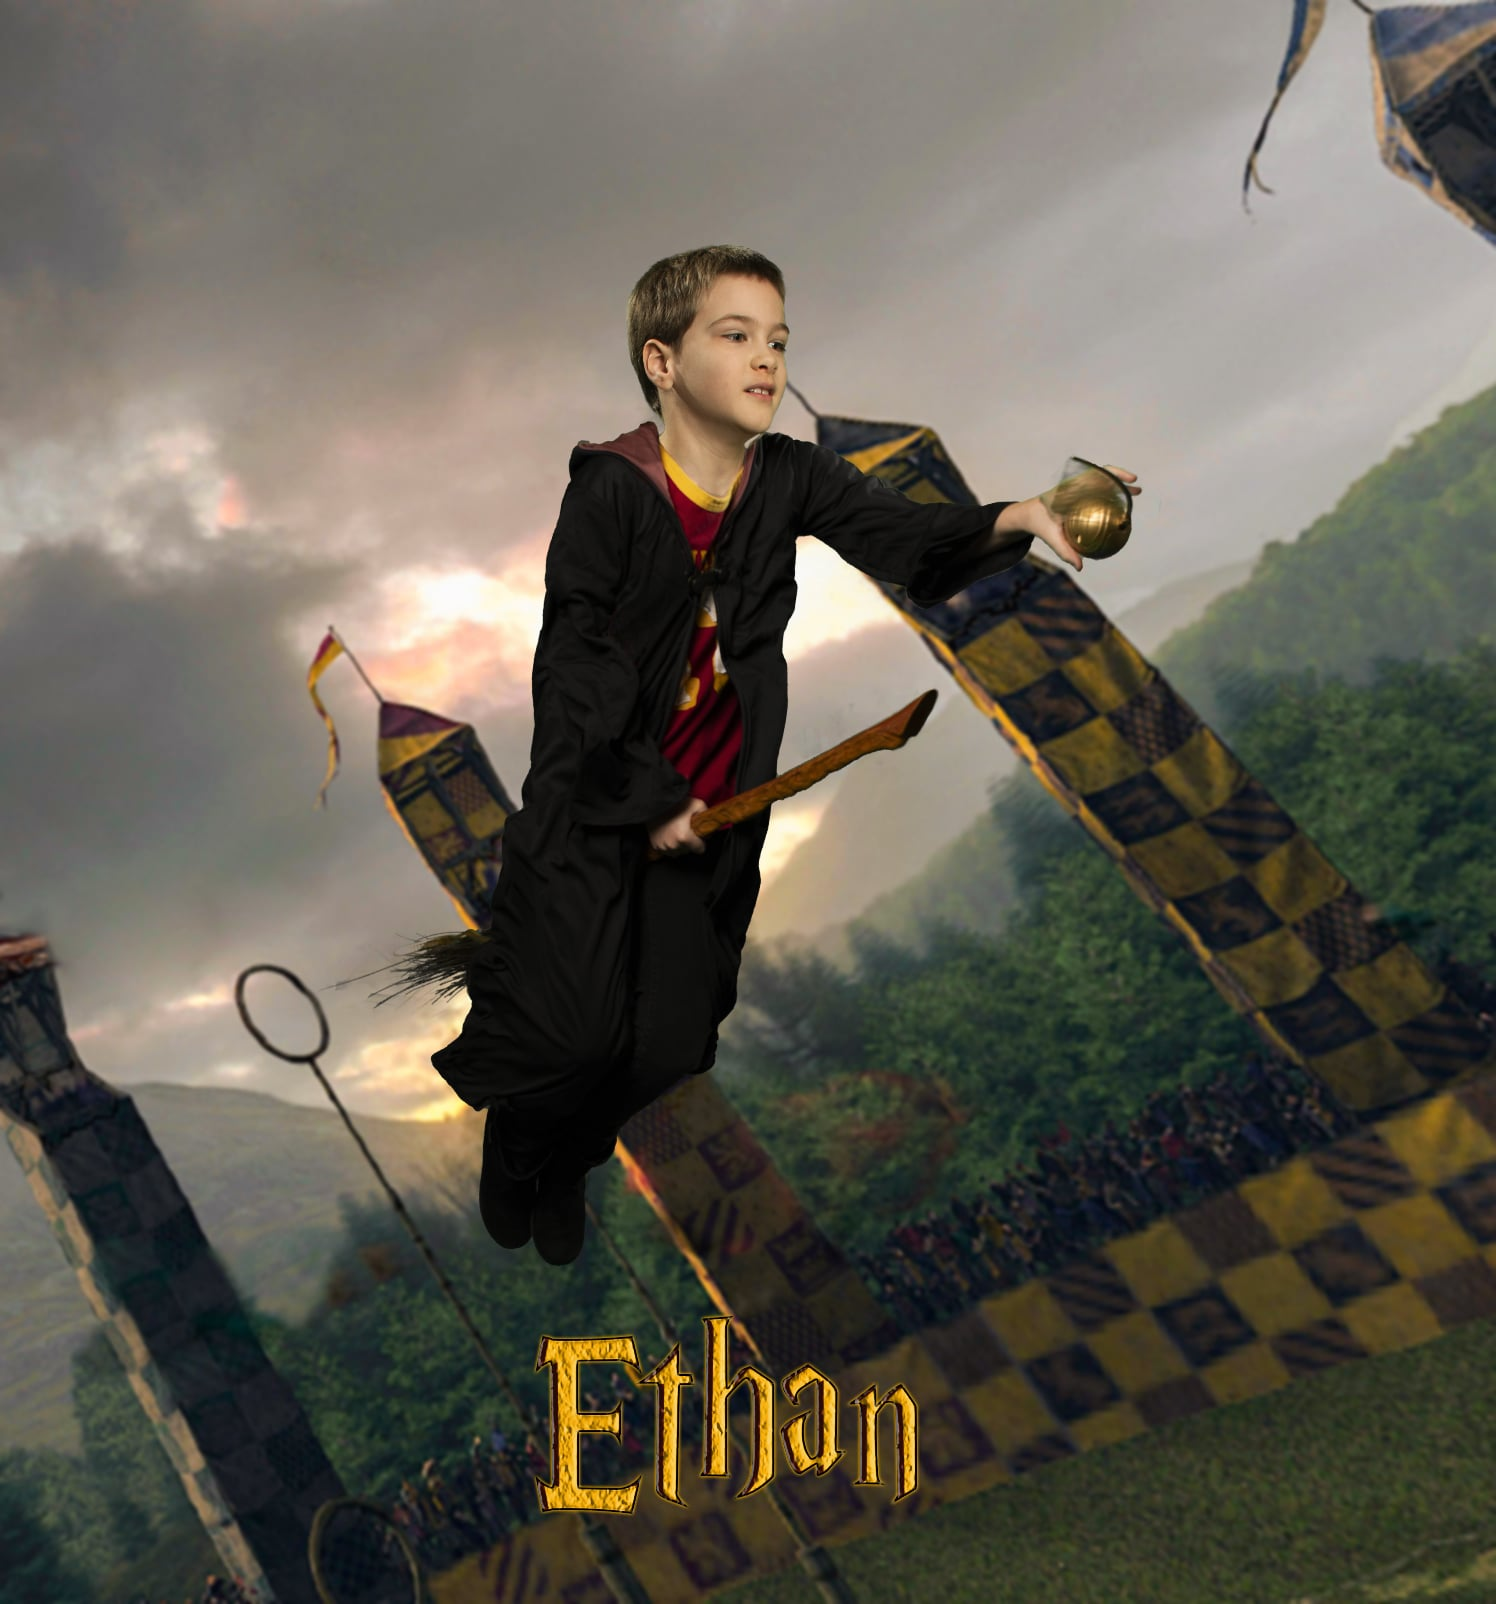 Ethan, who is 8 years old and autistic, had the chance to take to the skies and catch the Golden Snitch.